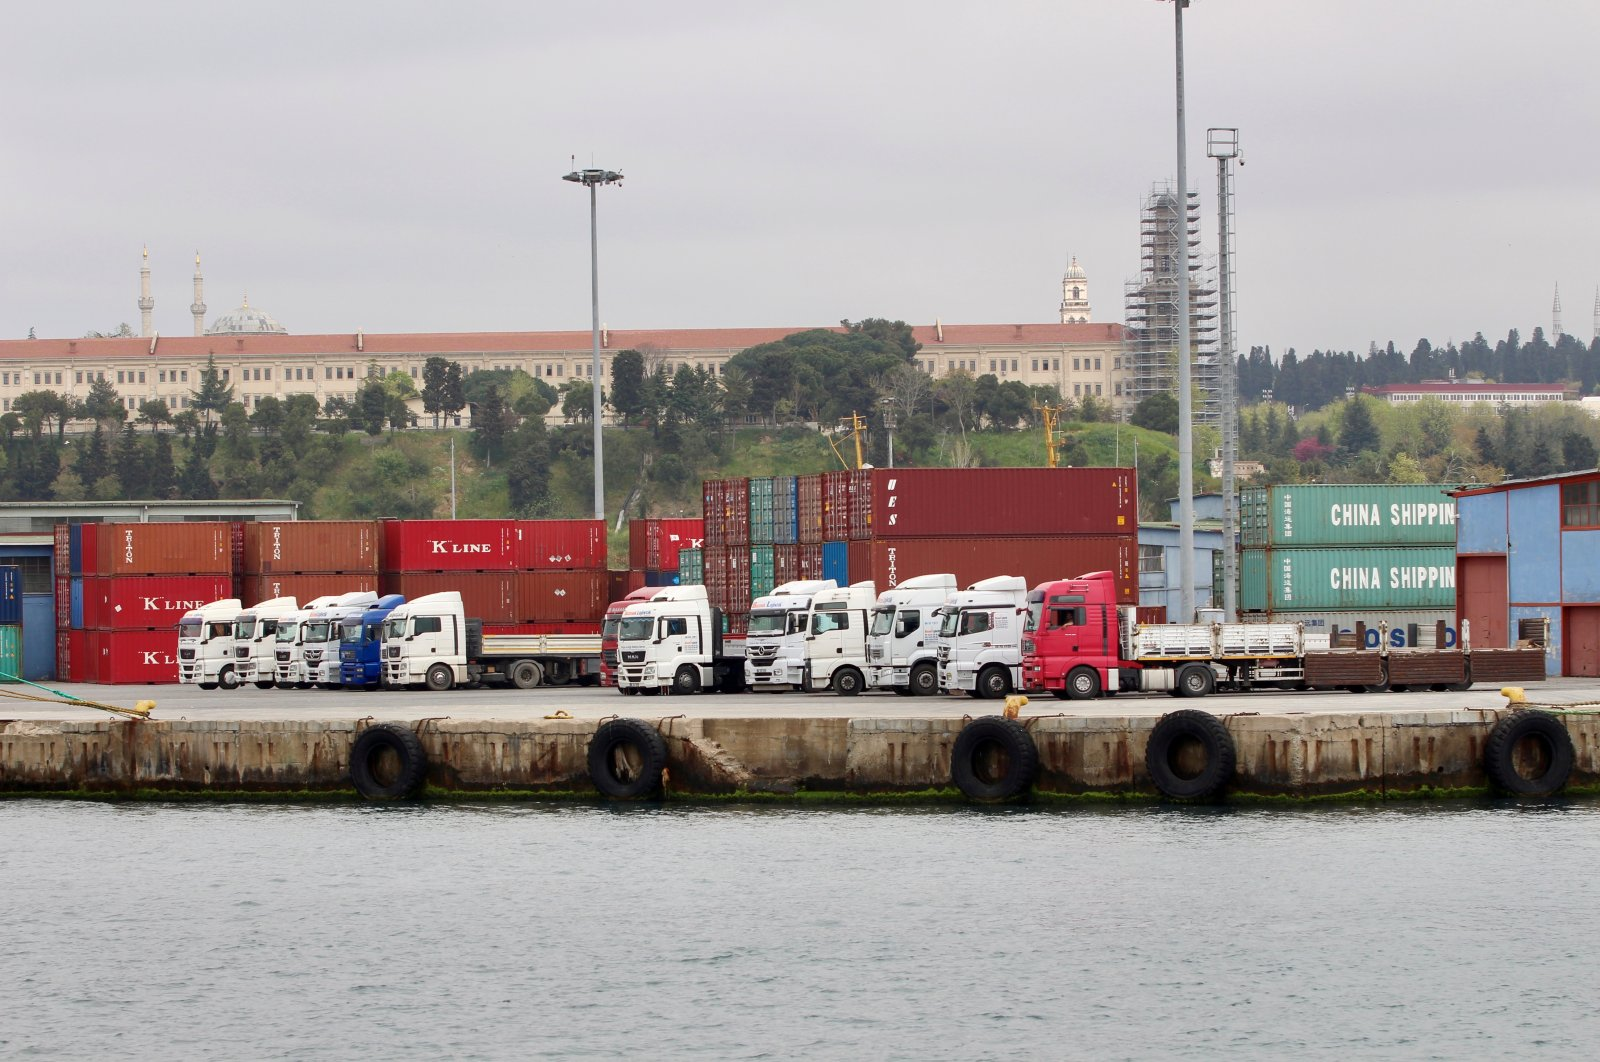 Trucks and shipping containers are pictured at Haydarpaşa Port in Istanbul, Turkey, April 18, 2018. (Reuters File Photo)